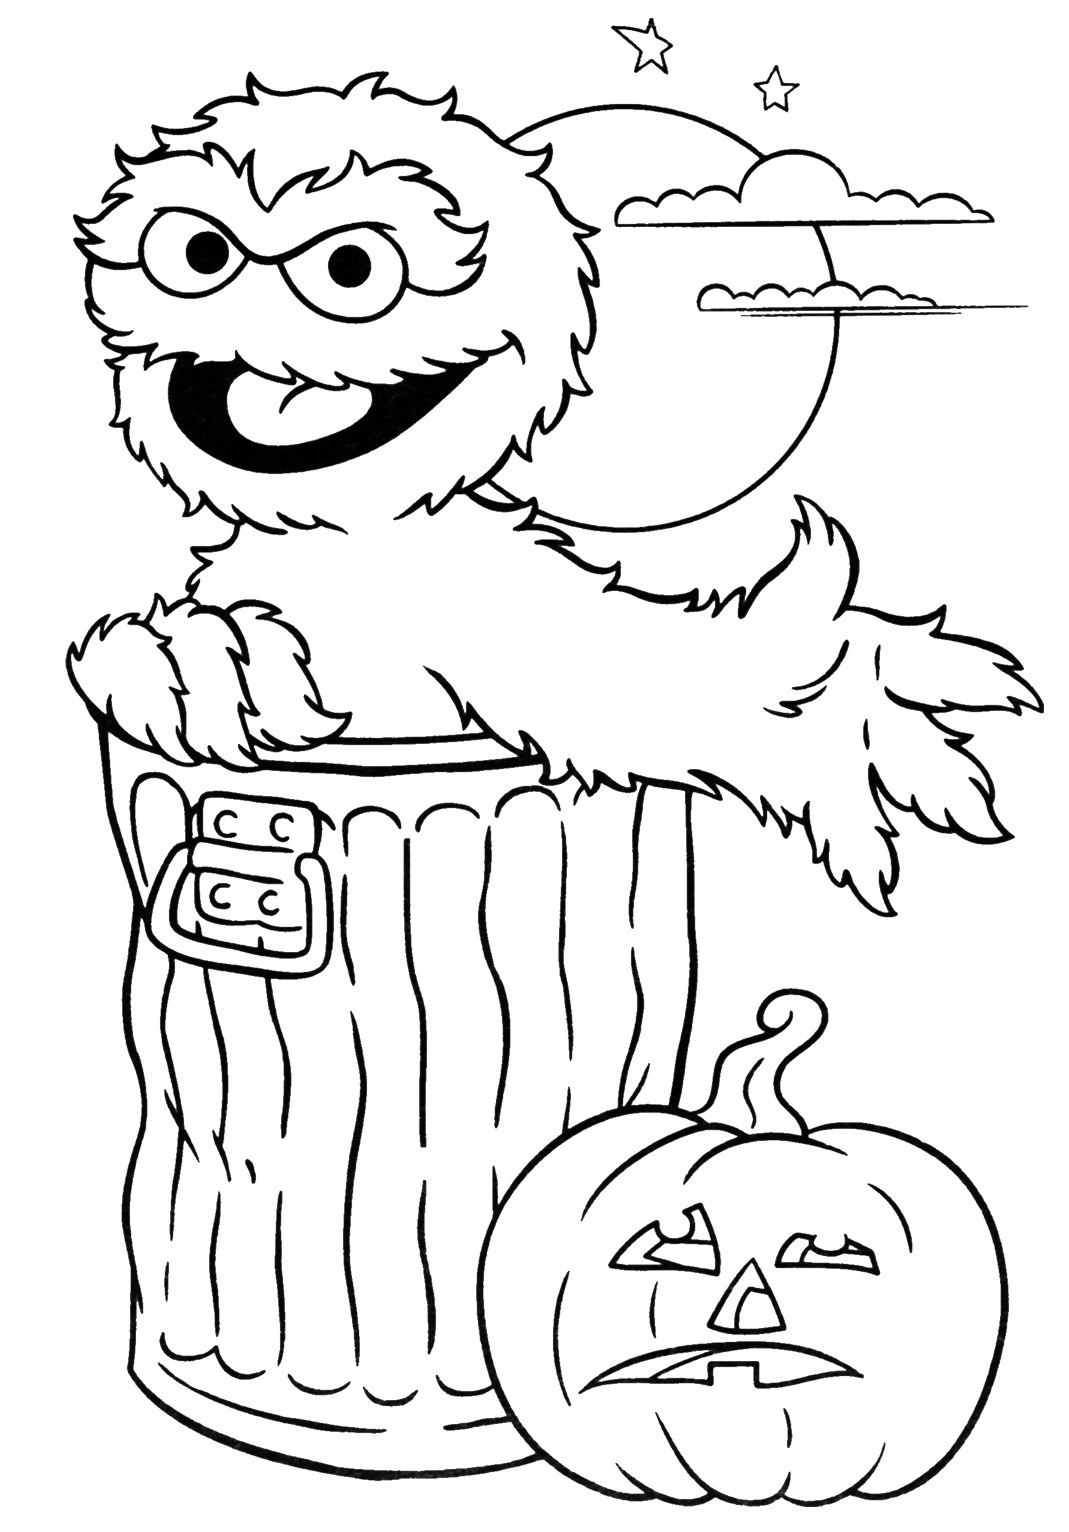 coloring pages halloween 24 free halloween coloring pages for kids honey lime coloring pages halloween